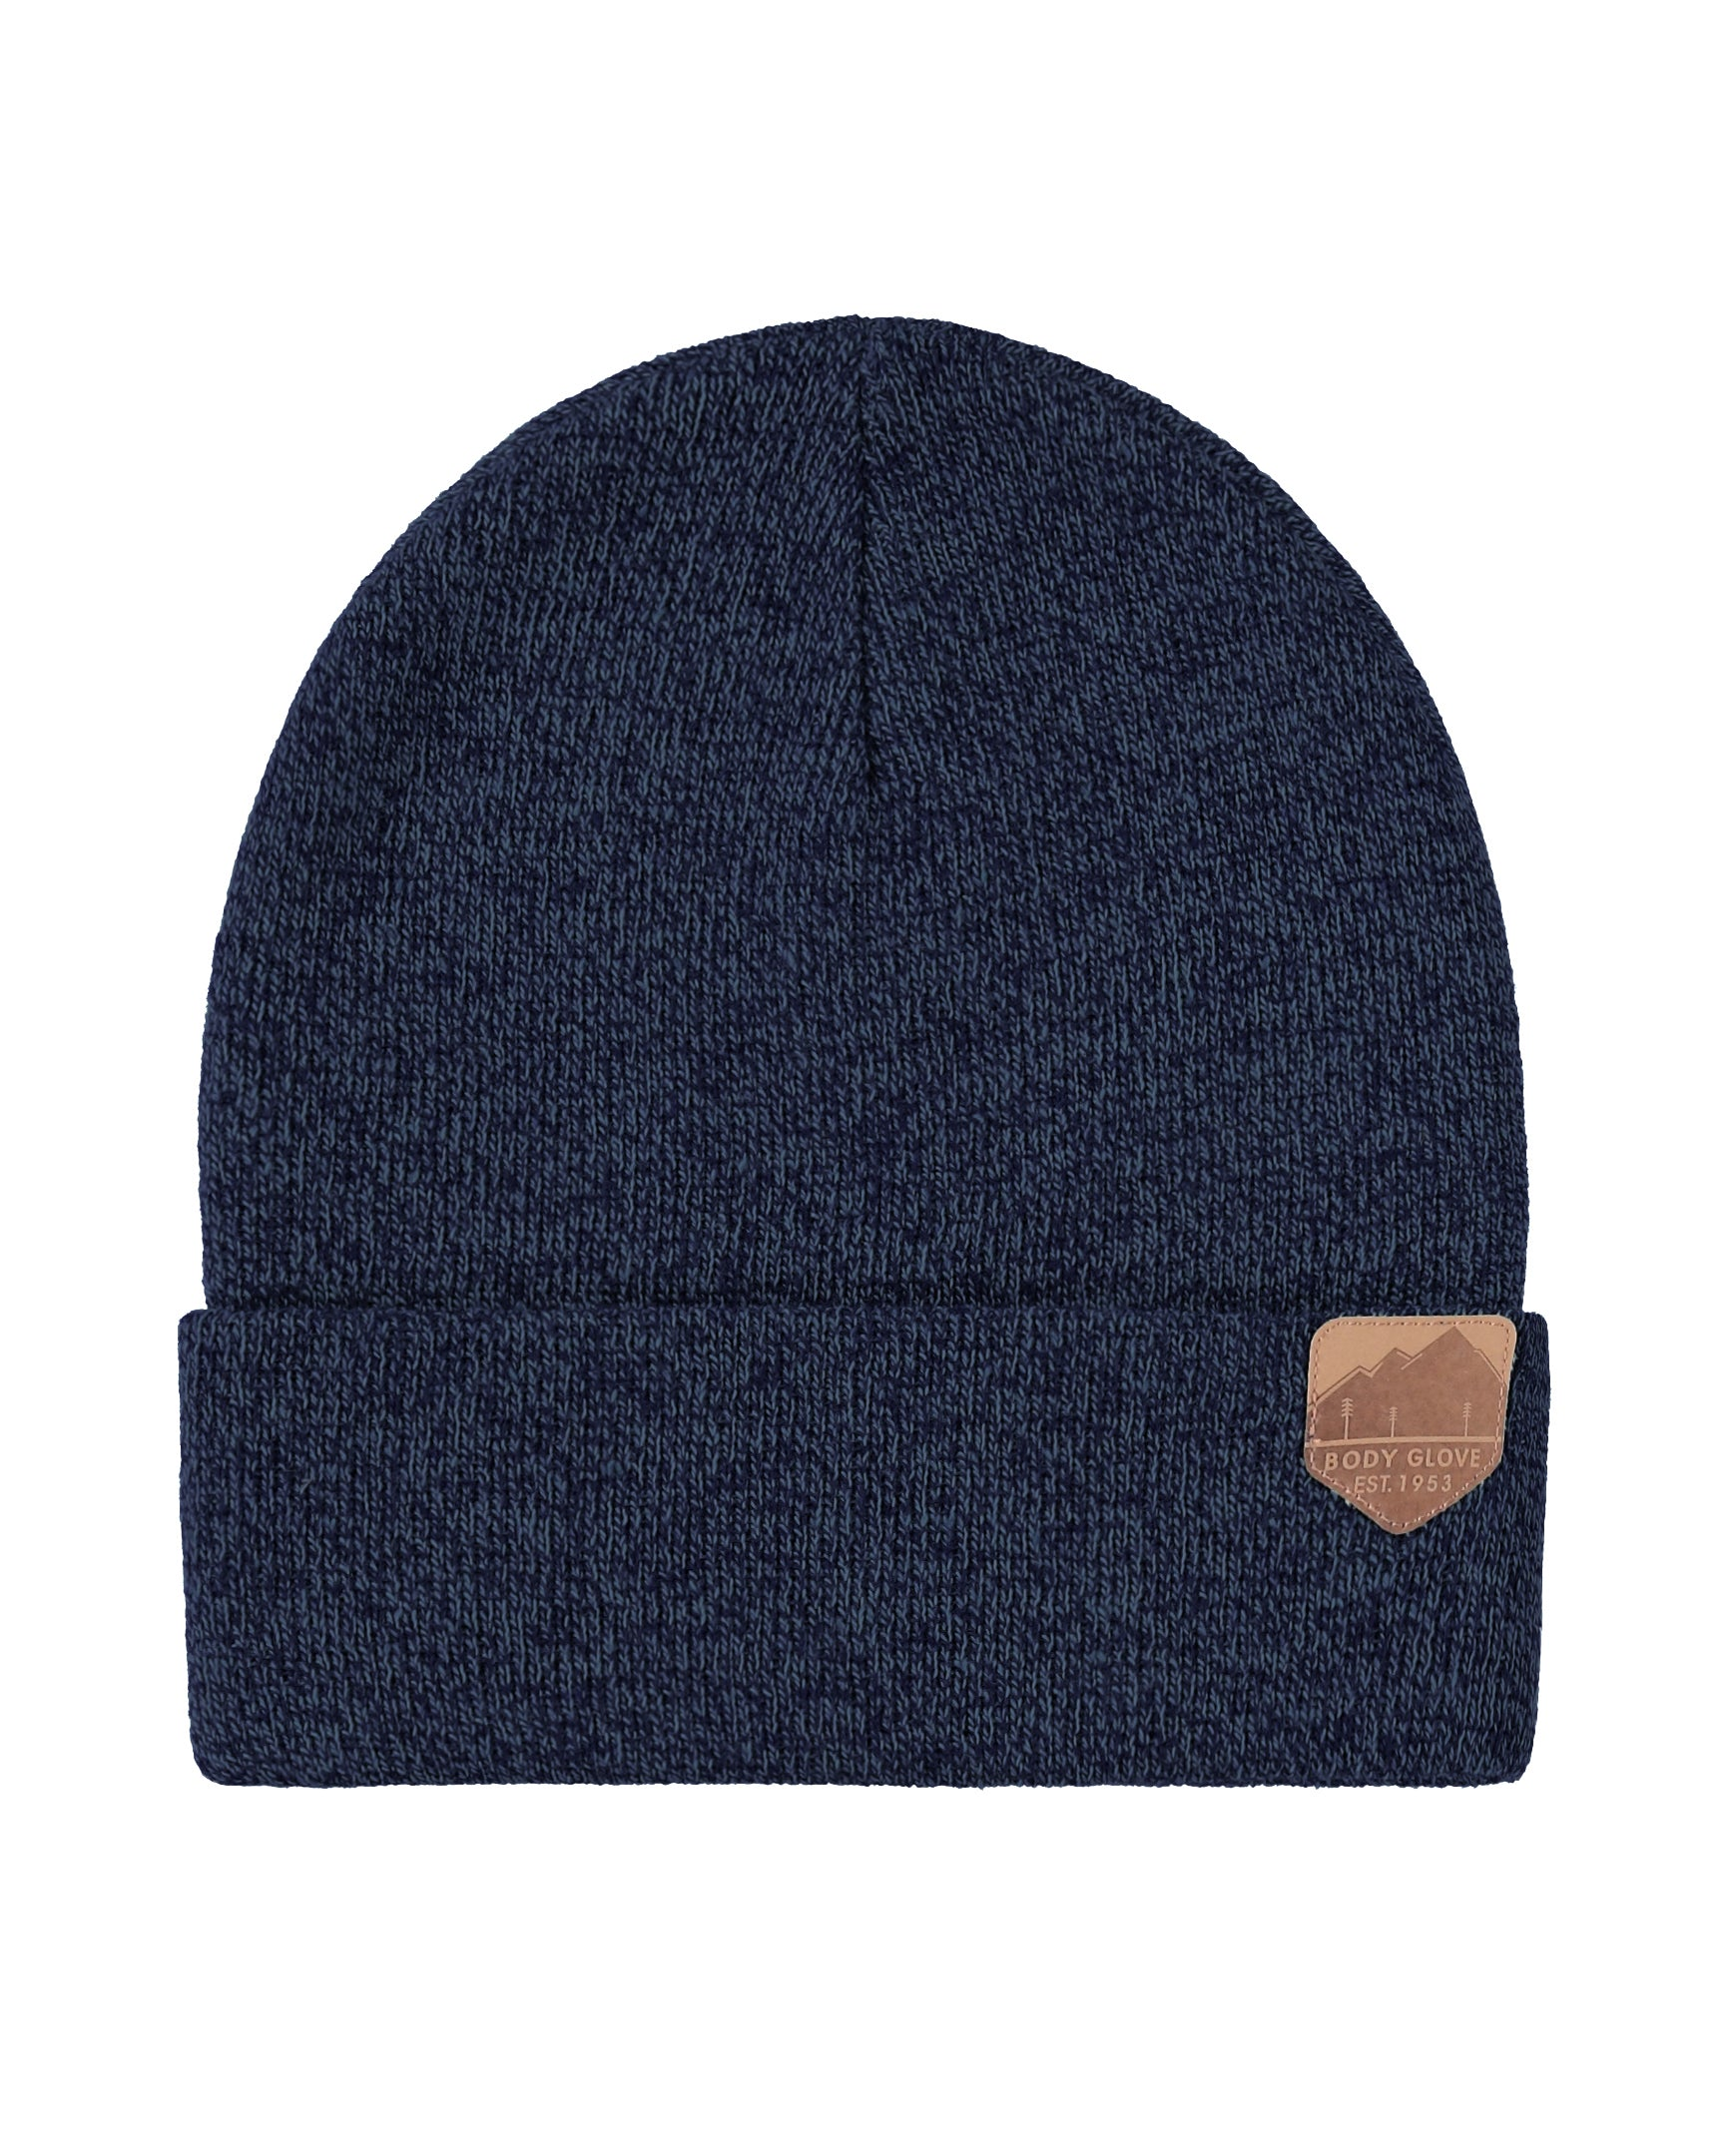 Unisex Knit Beanie with Mountain Patch- Navy